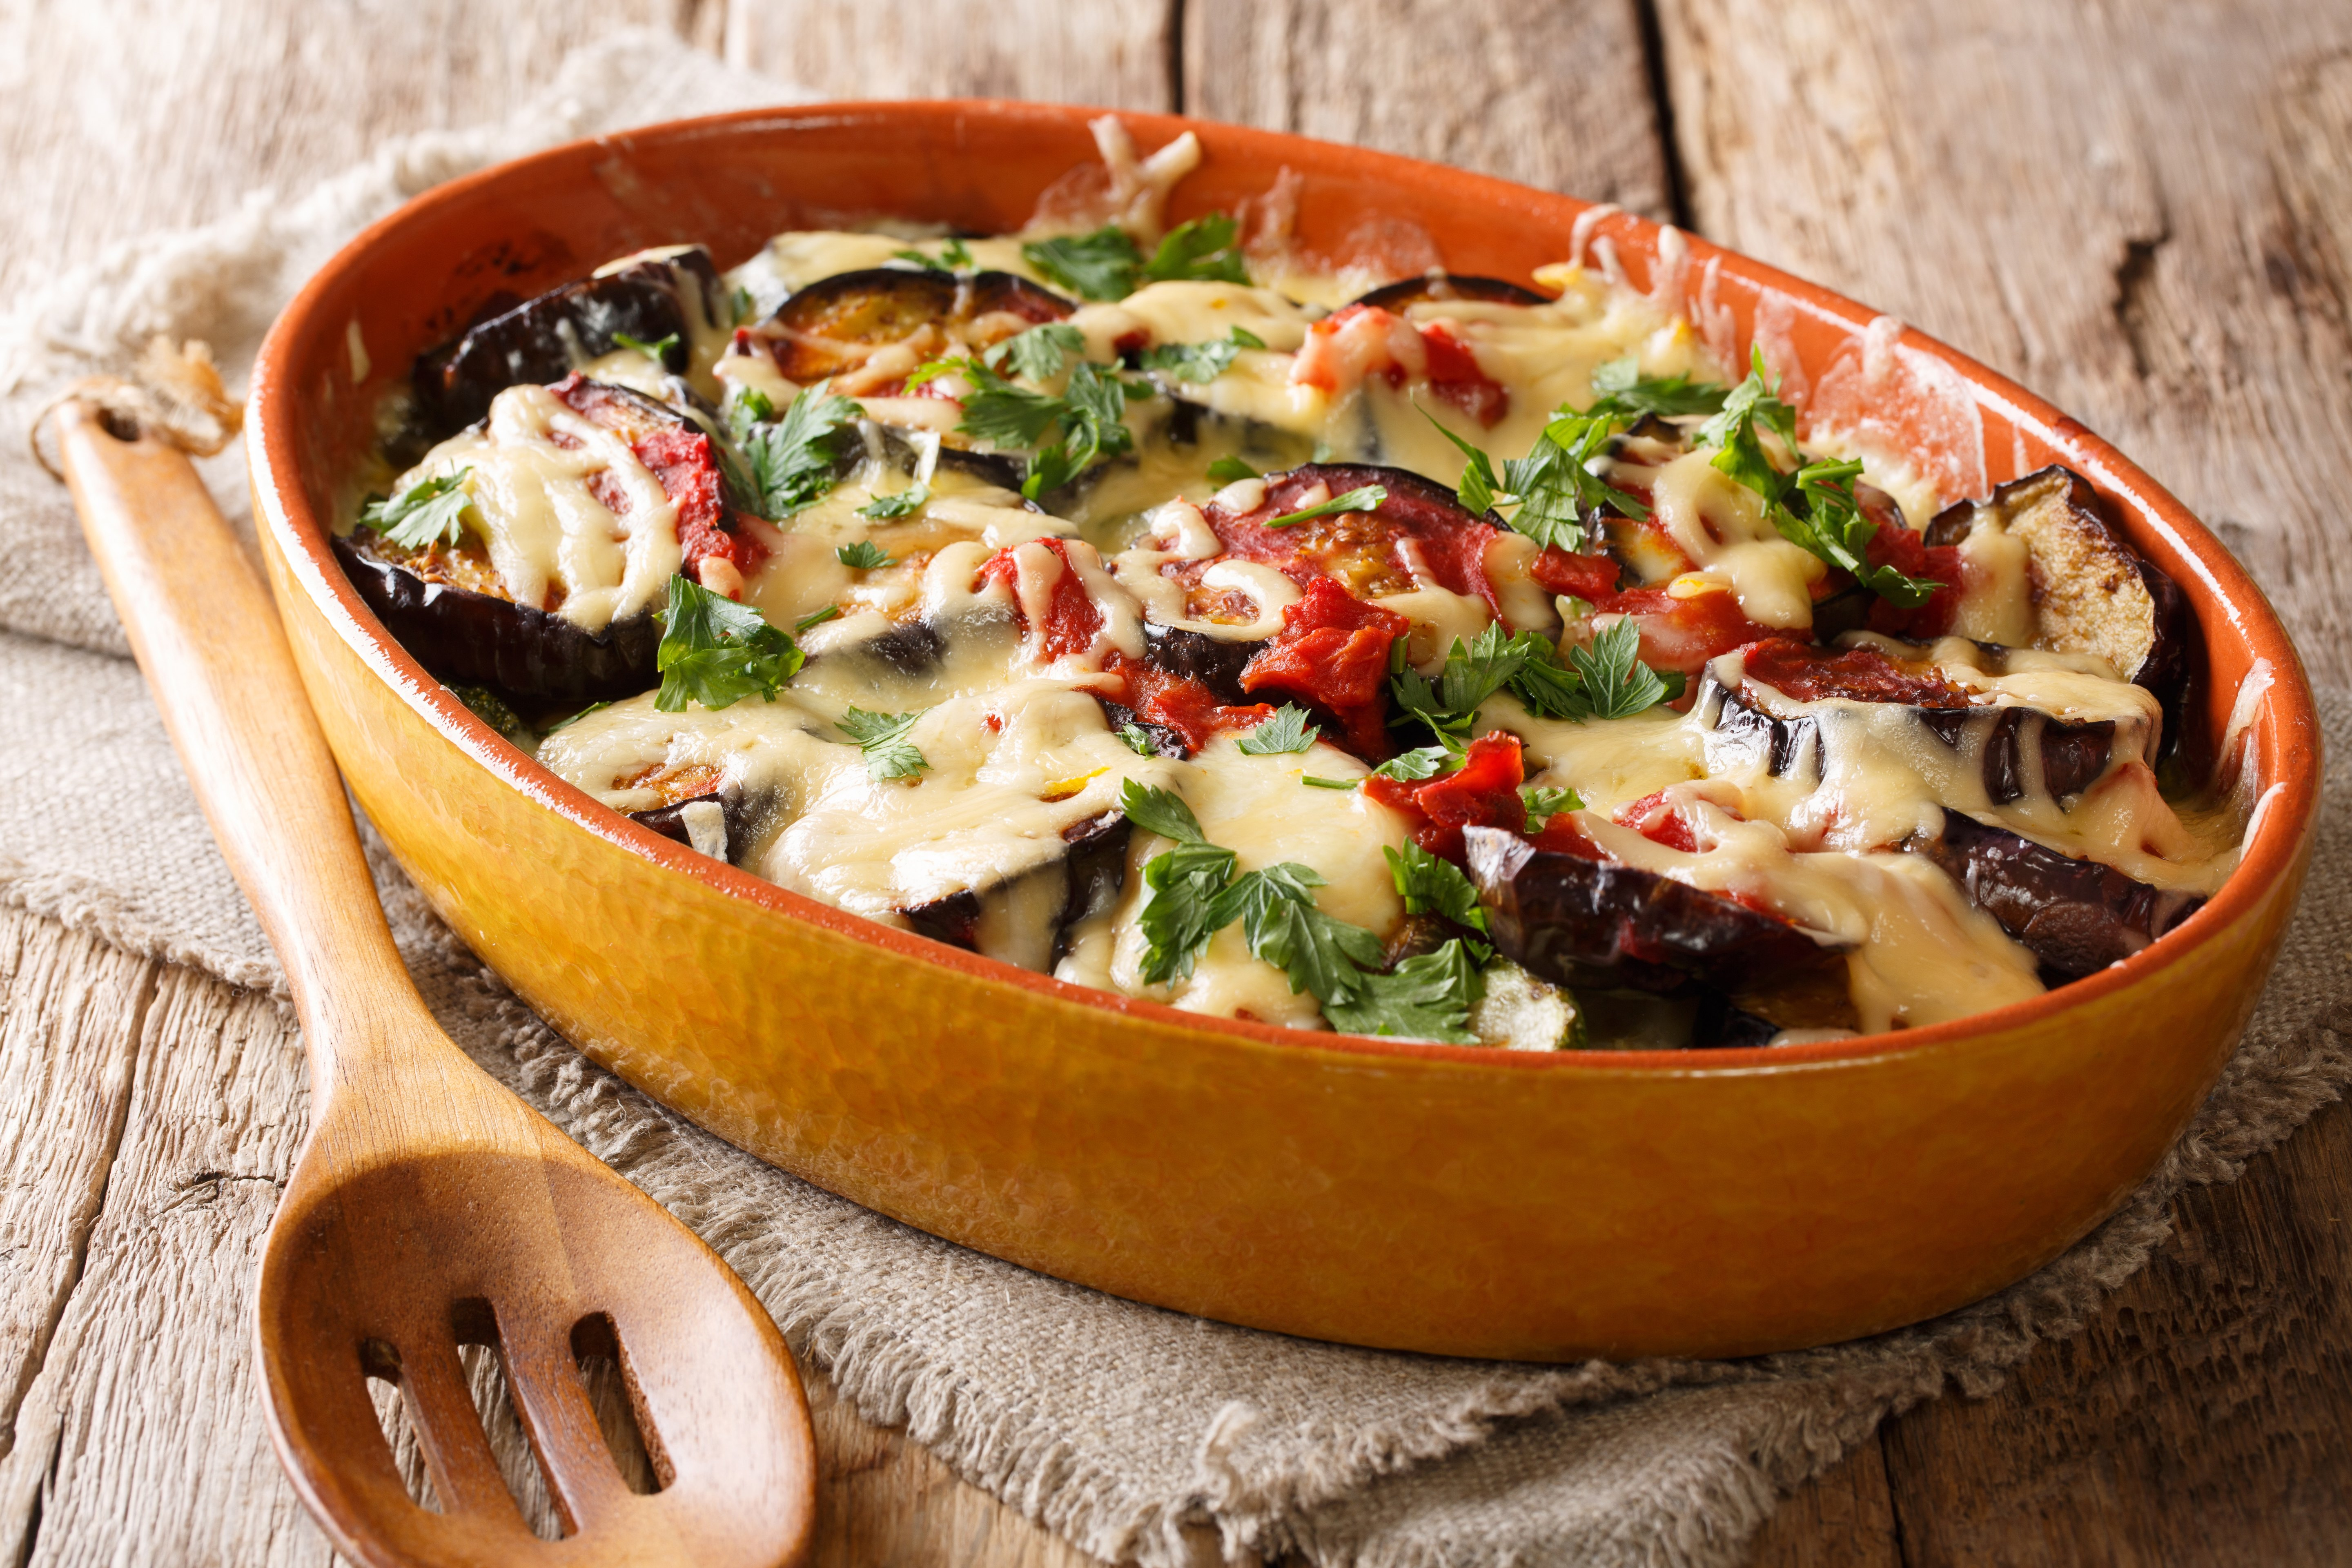 7 Healthy Vegetarian Slow Cooker Recipes From Chili to Moussaka